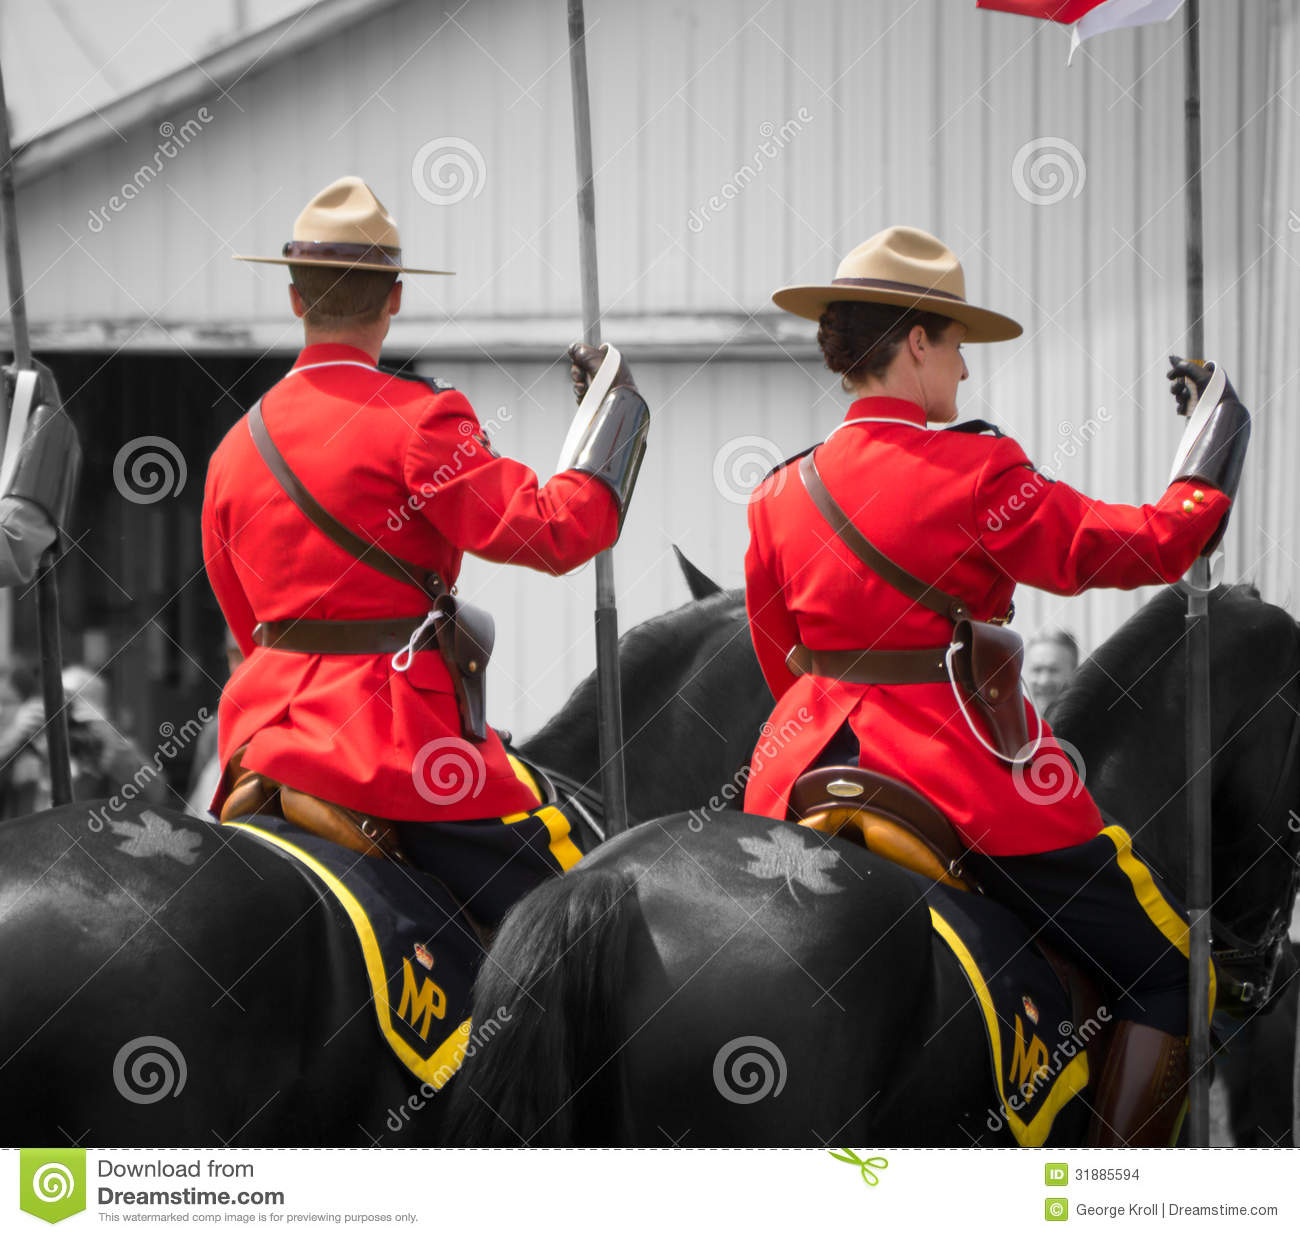 tatouage de rcmp de chevaux et de feuille d rable image. Black Bedroom Furniture Sets. Home Design Ideas